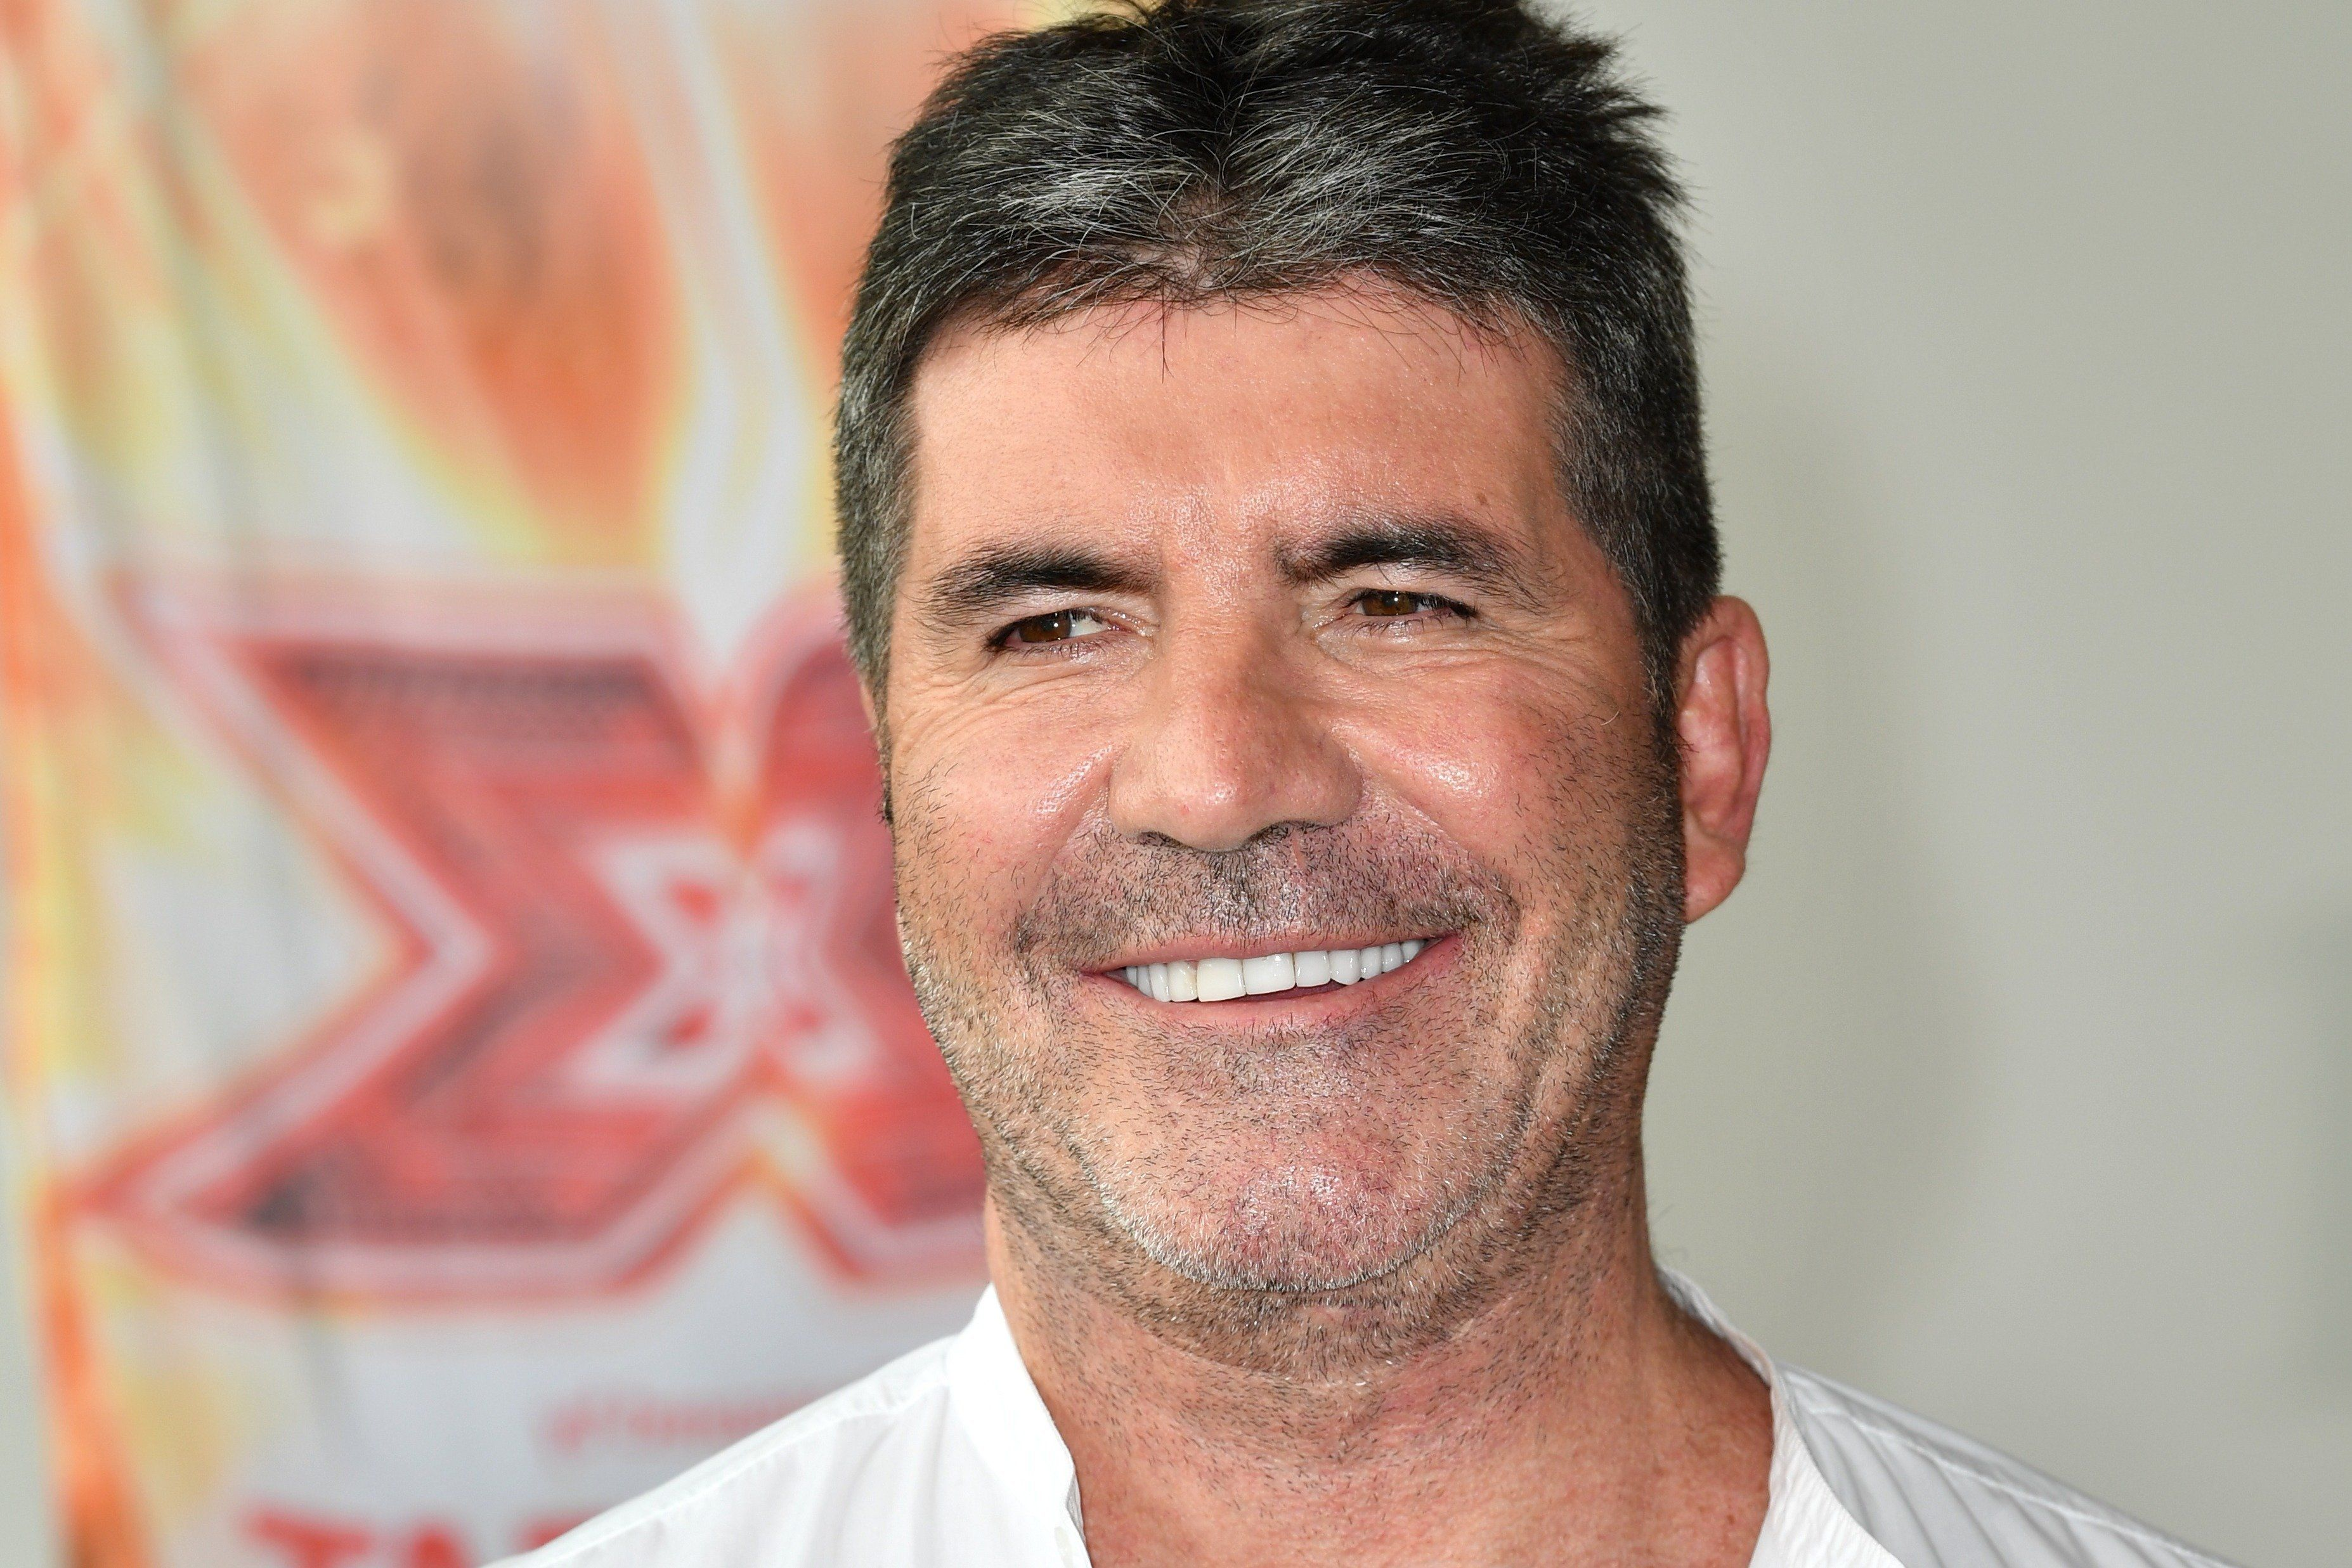 Simon Cowell is leading the judging panel